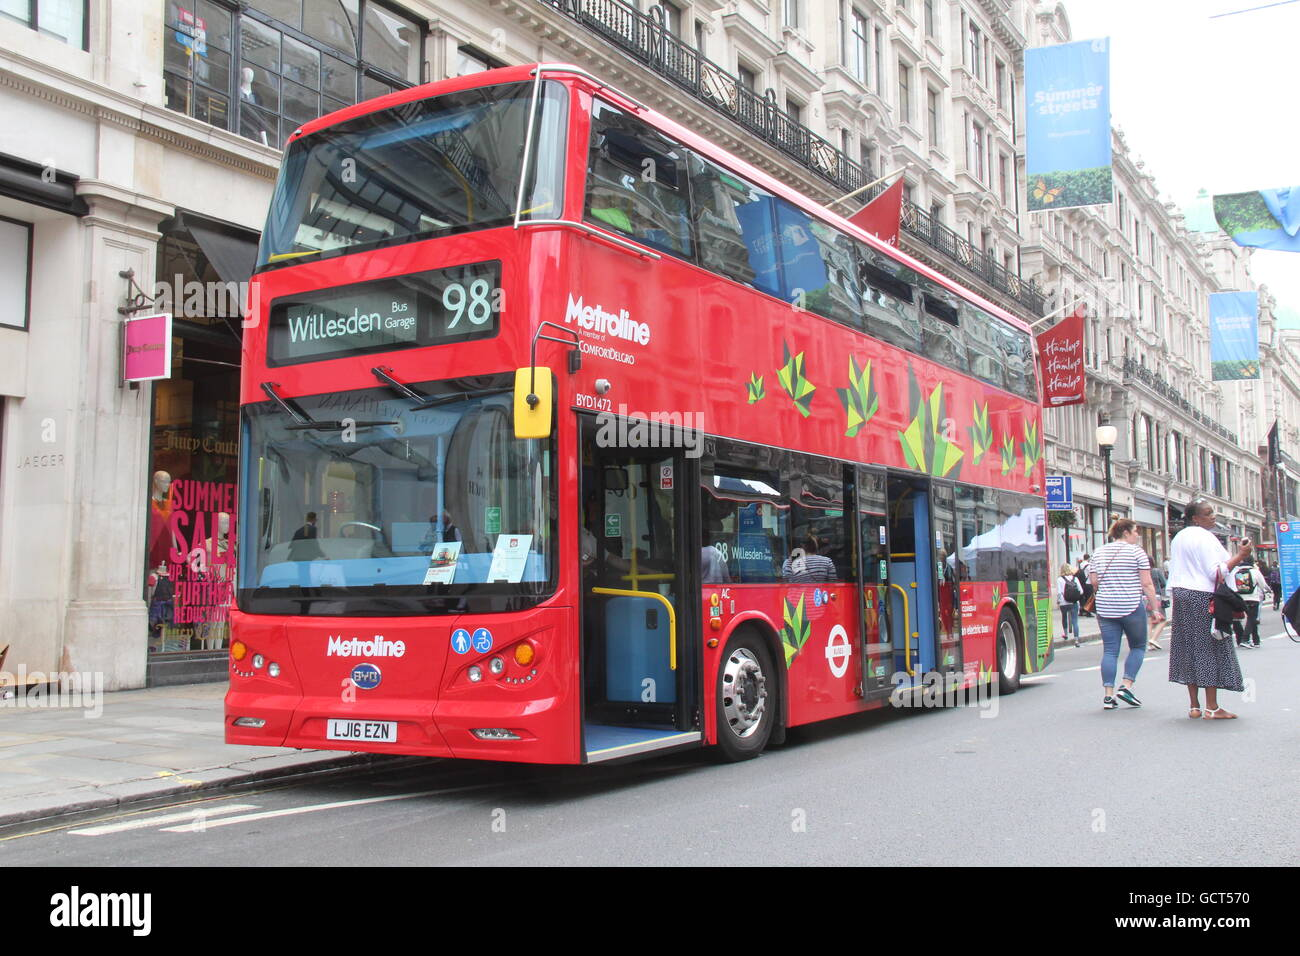 VIEW OF THE FRONT OF A BYD ELECTRIC DOUBLE DECK BUS FOR TFL LONDON METROLINE ROUTE 98 - Stock Image